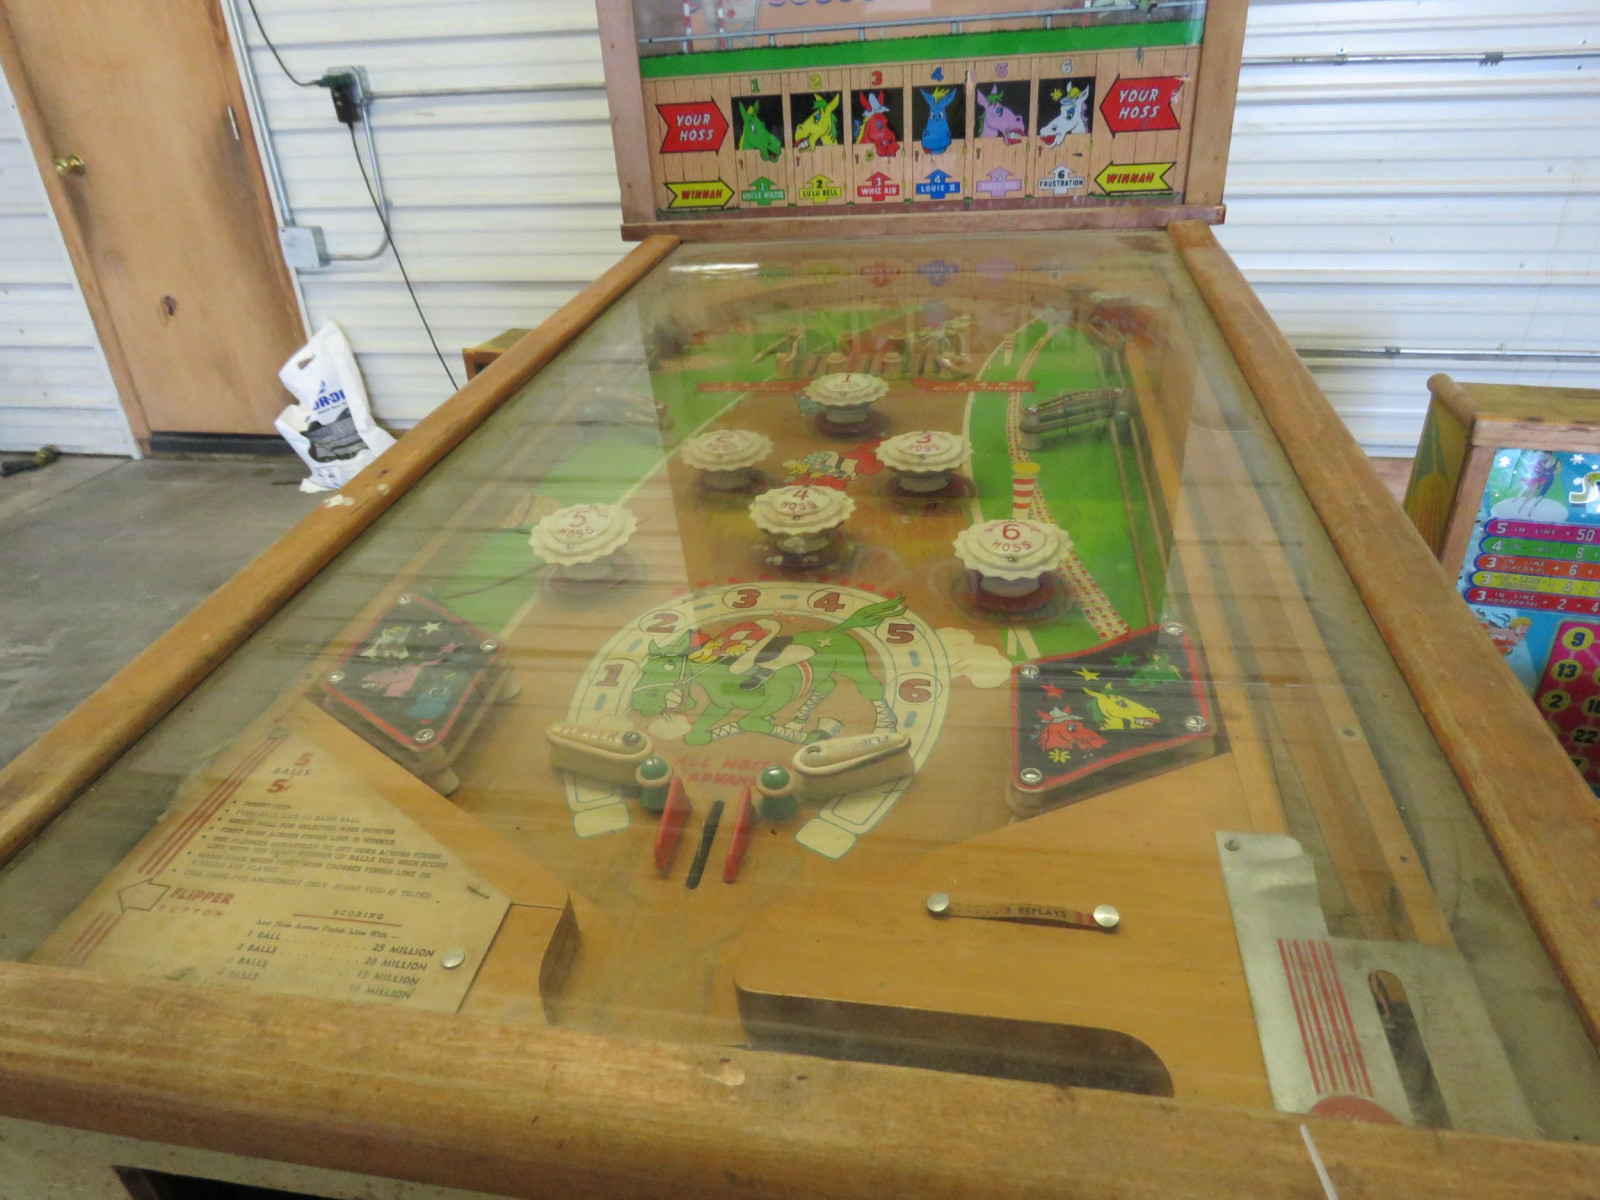 Hay Burners Vintage Horse Racing Pinball Machine - Image 3